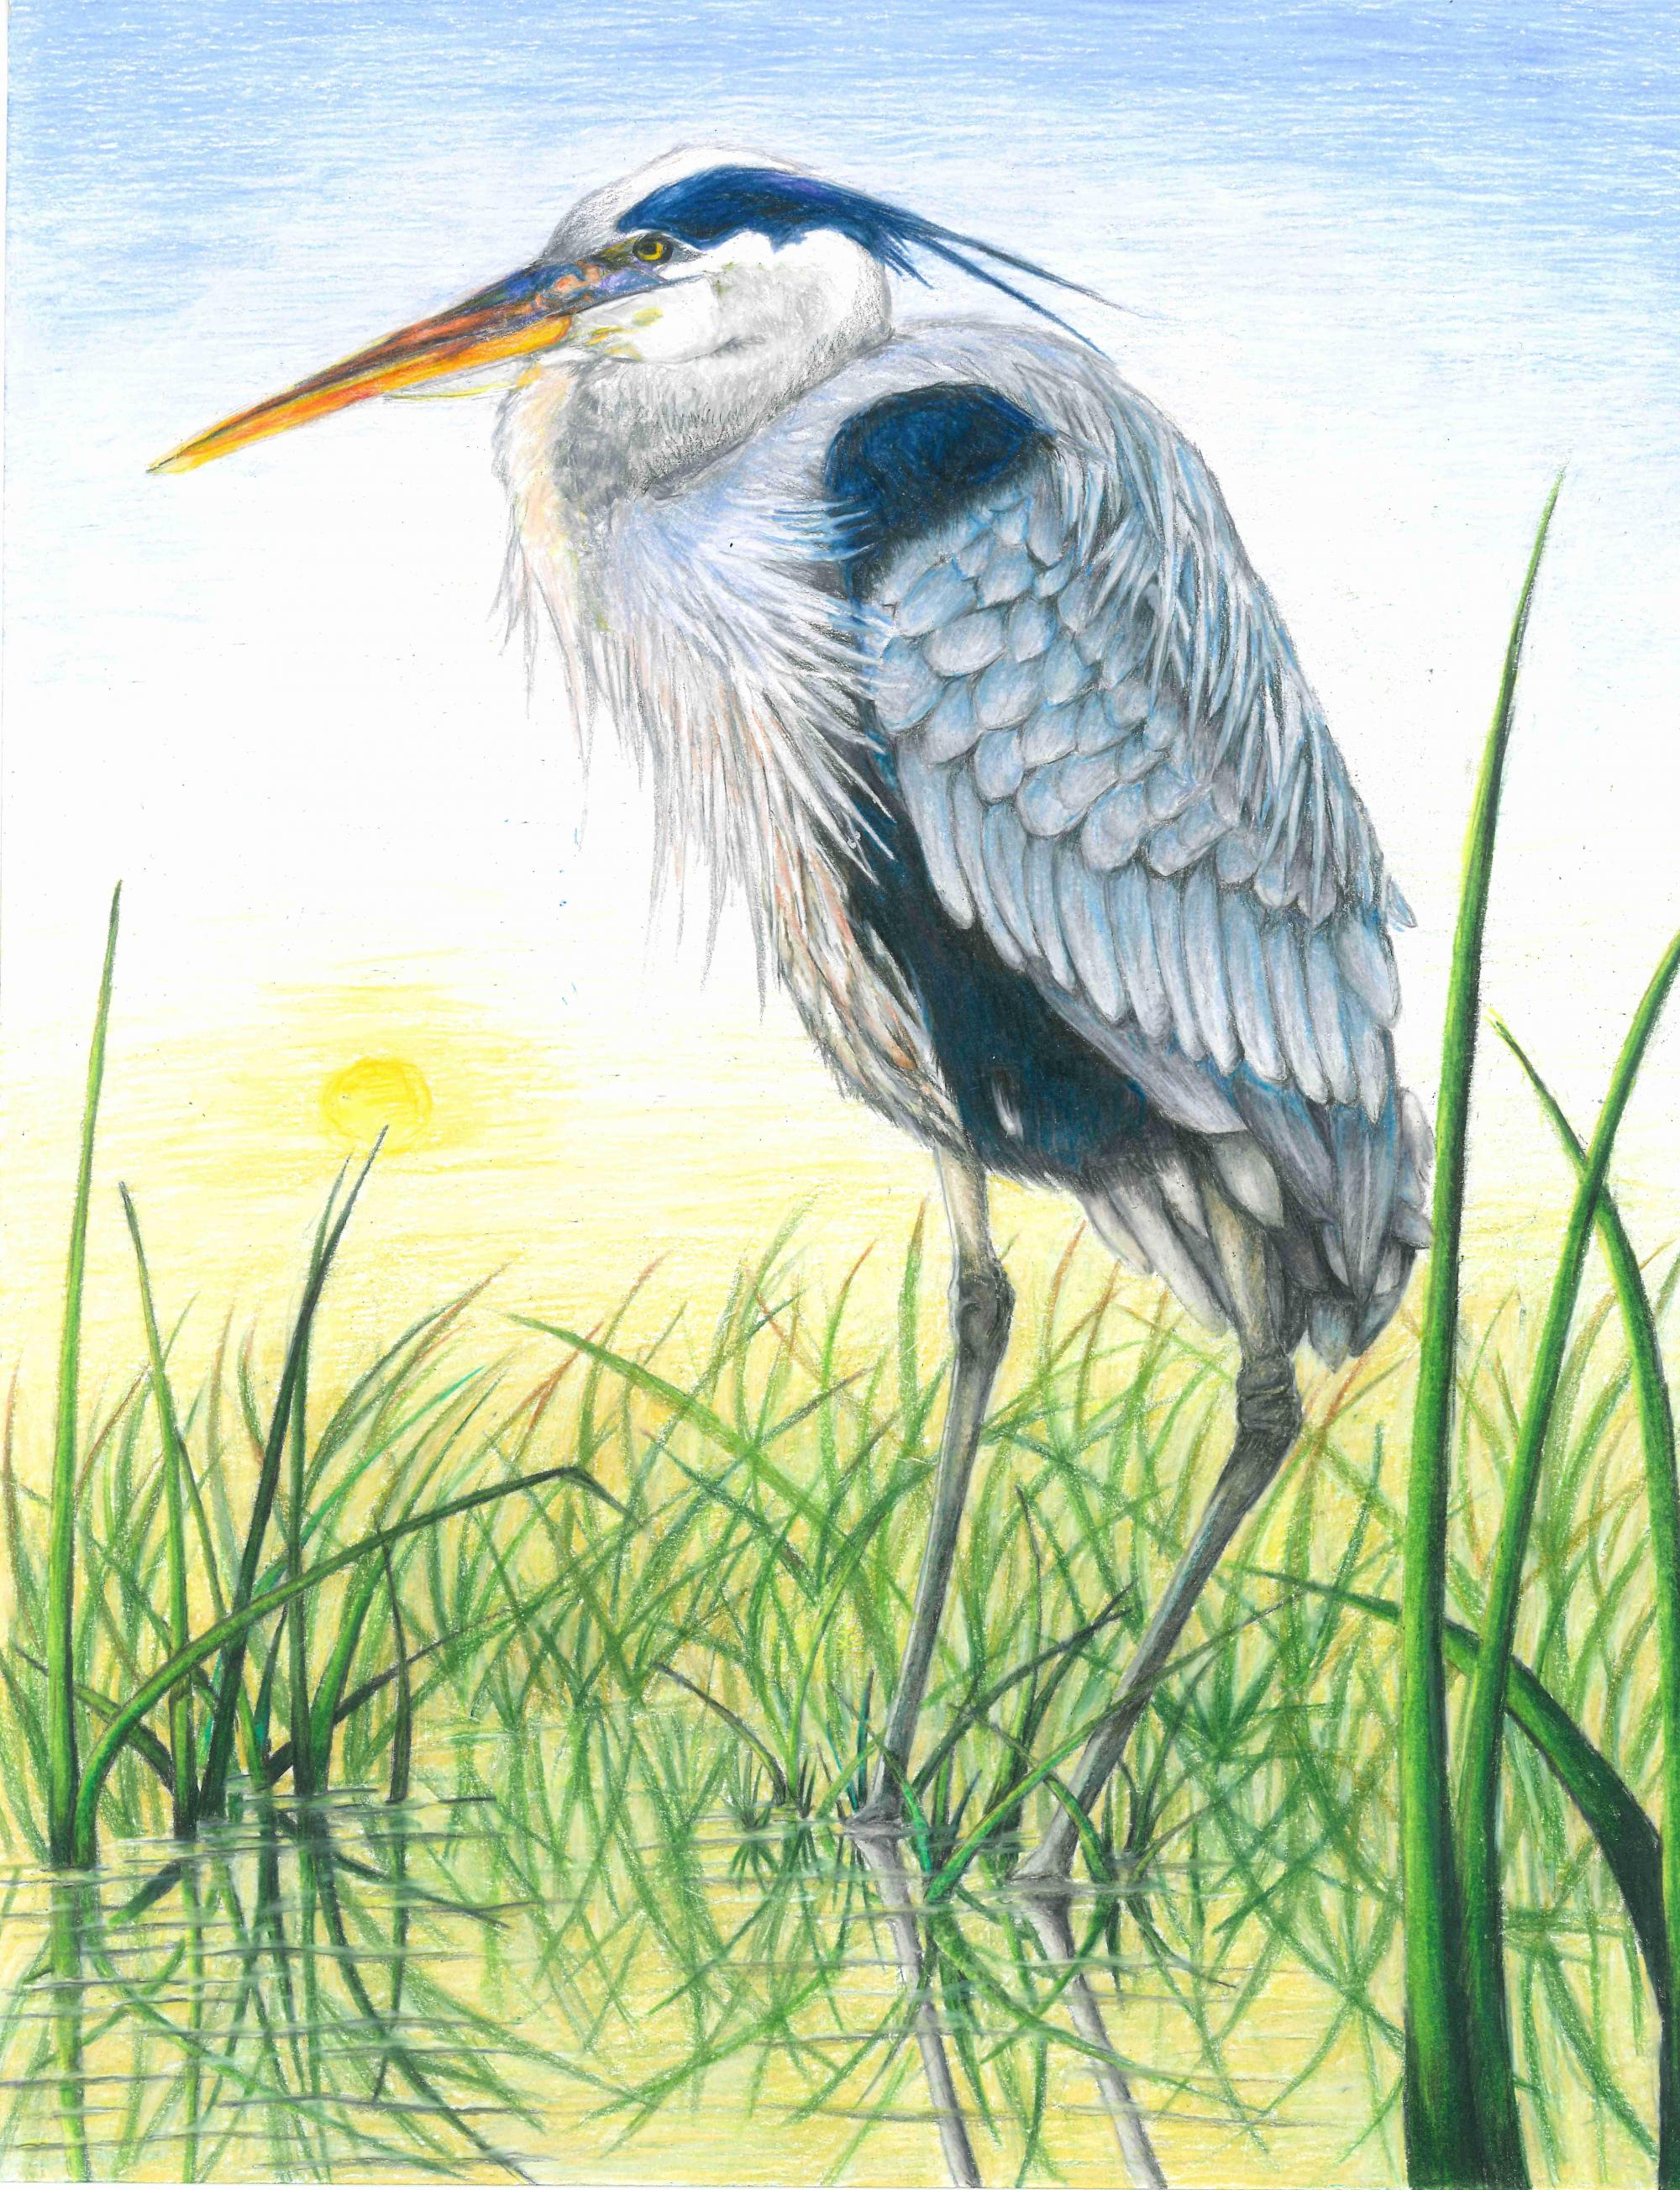 """The Heron"" Yitian Gao, age 14. Fremont, California. United States. River of Words 2018 Finalist."